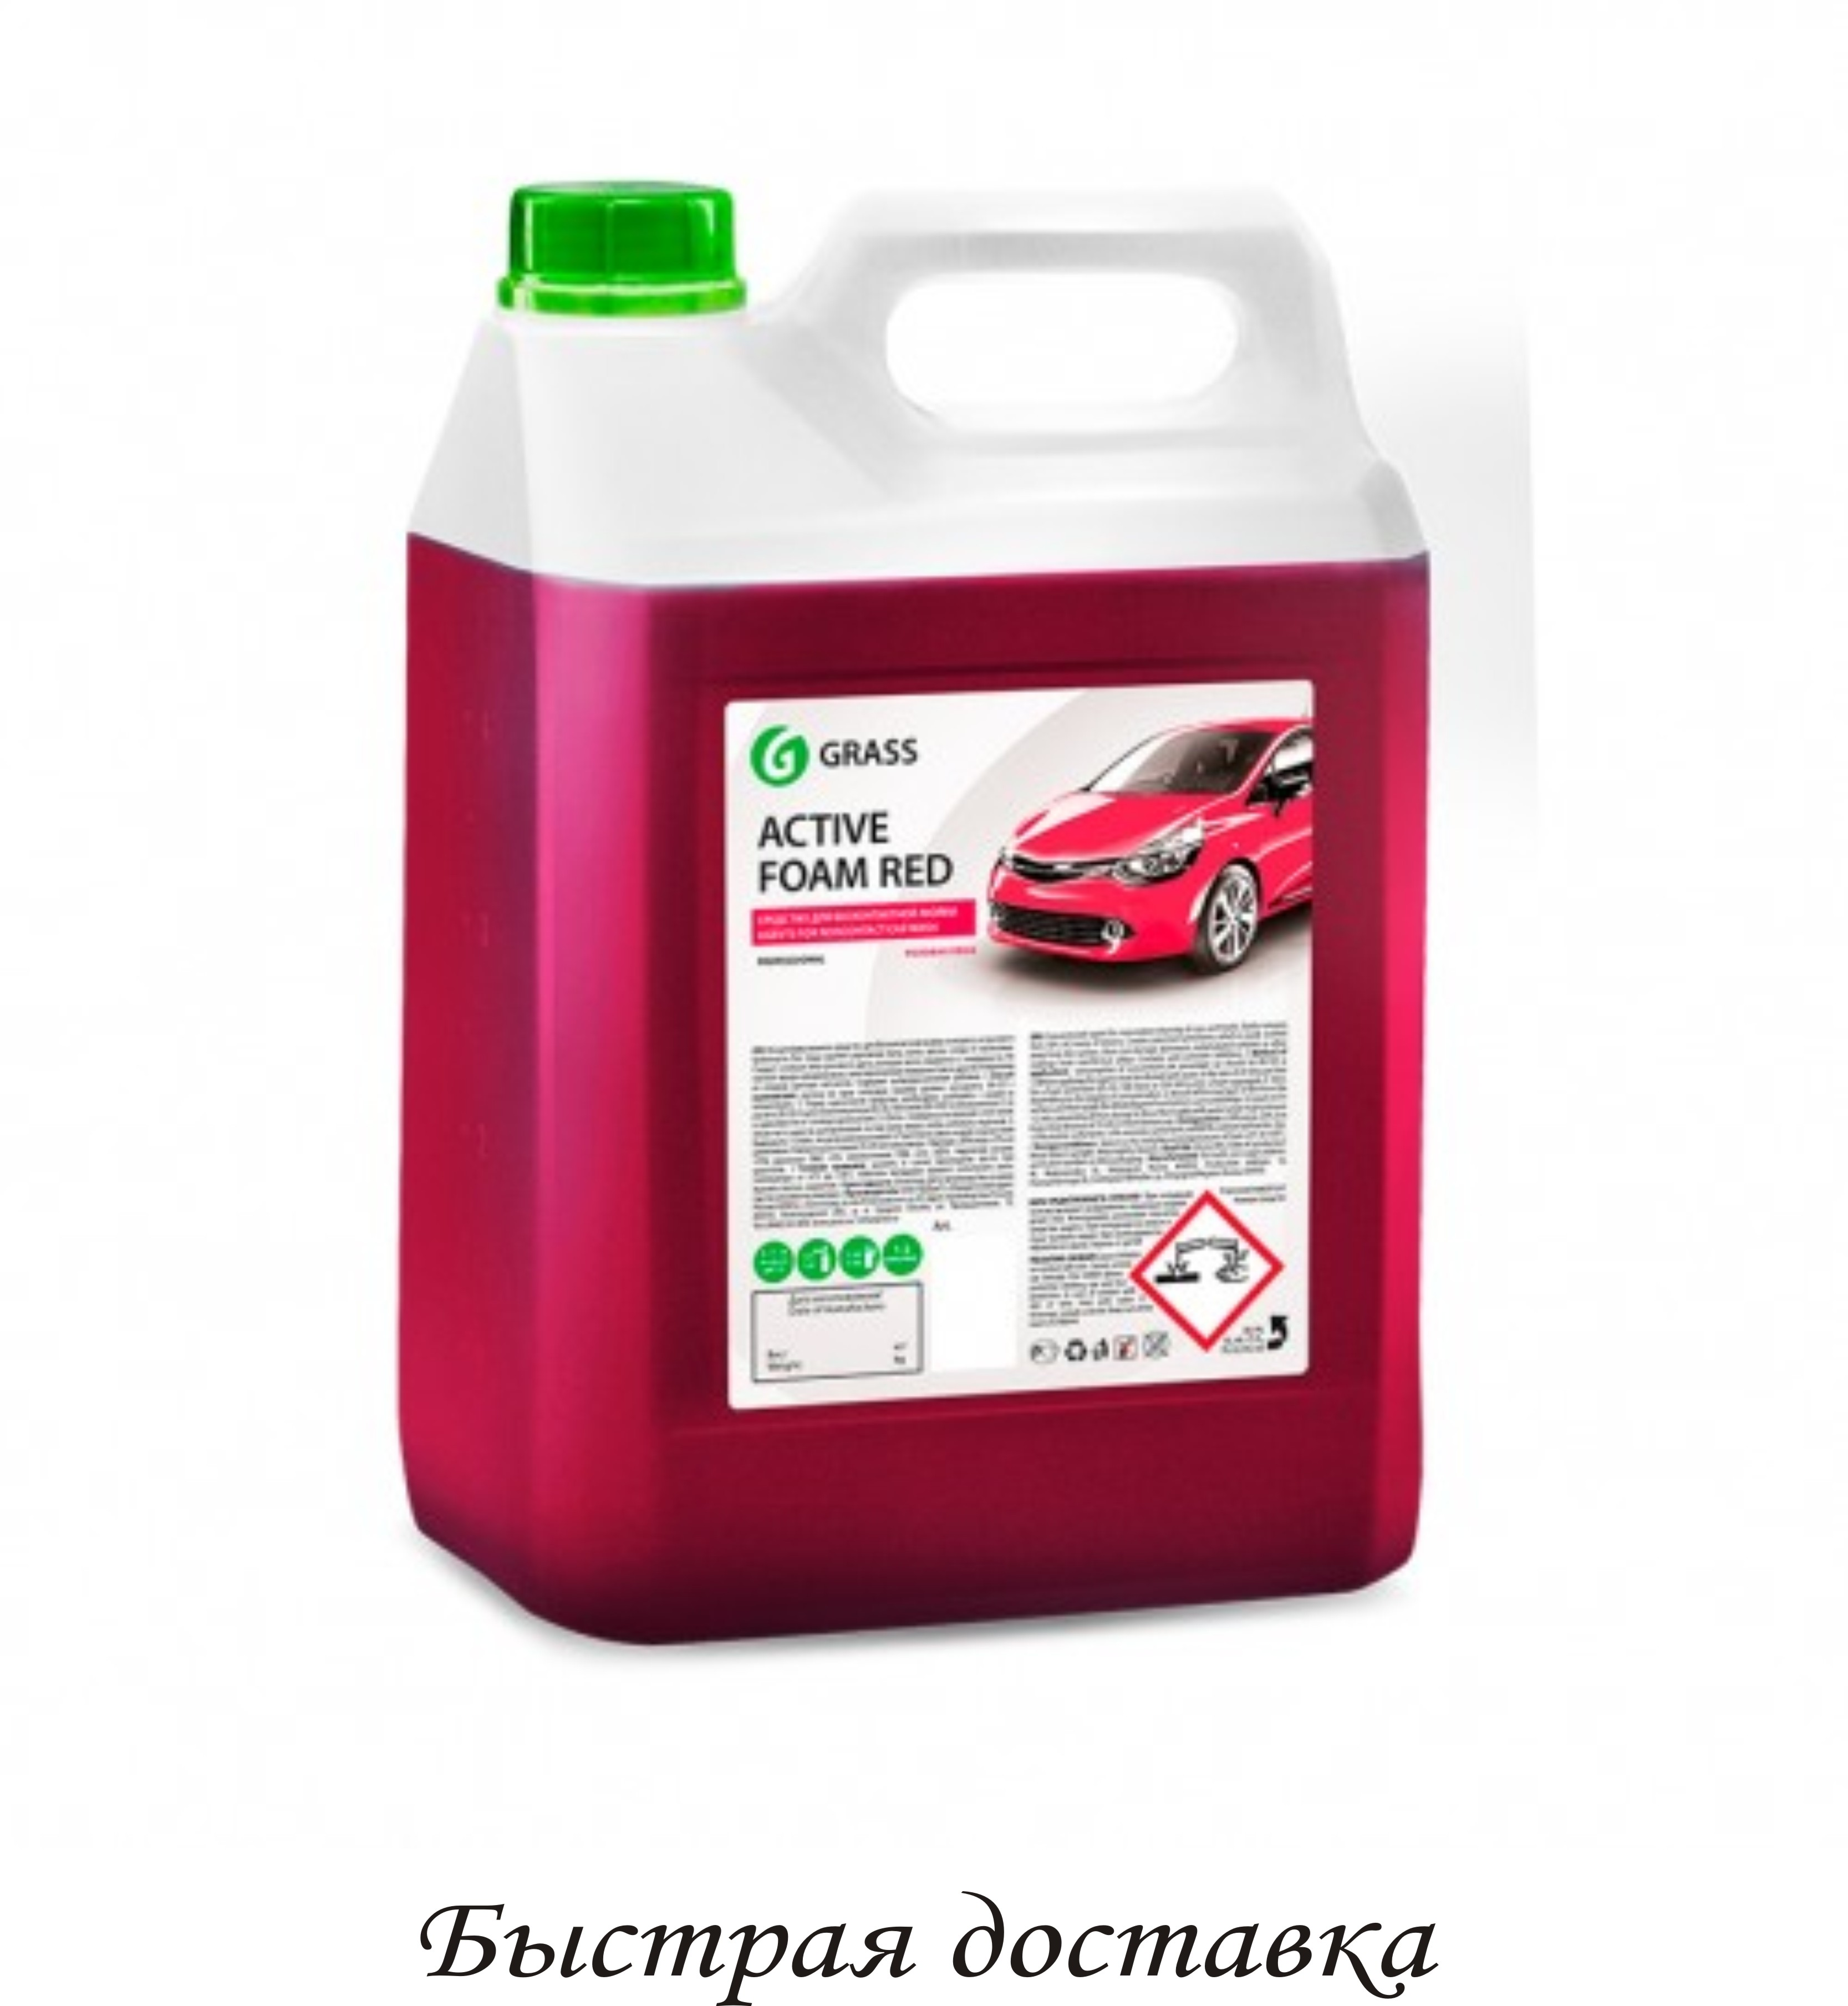 car-shampoo-foam-non-contact-grass-active-foam-red-red-Конц-58кг-fast-shipping